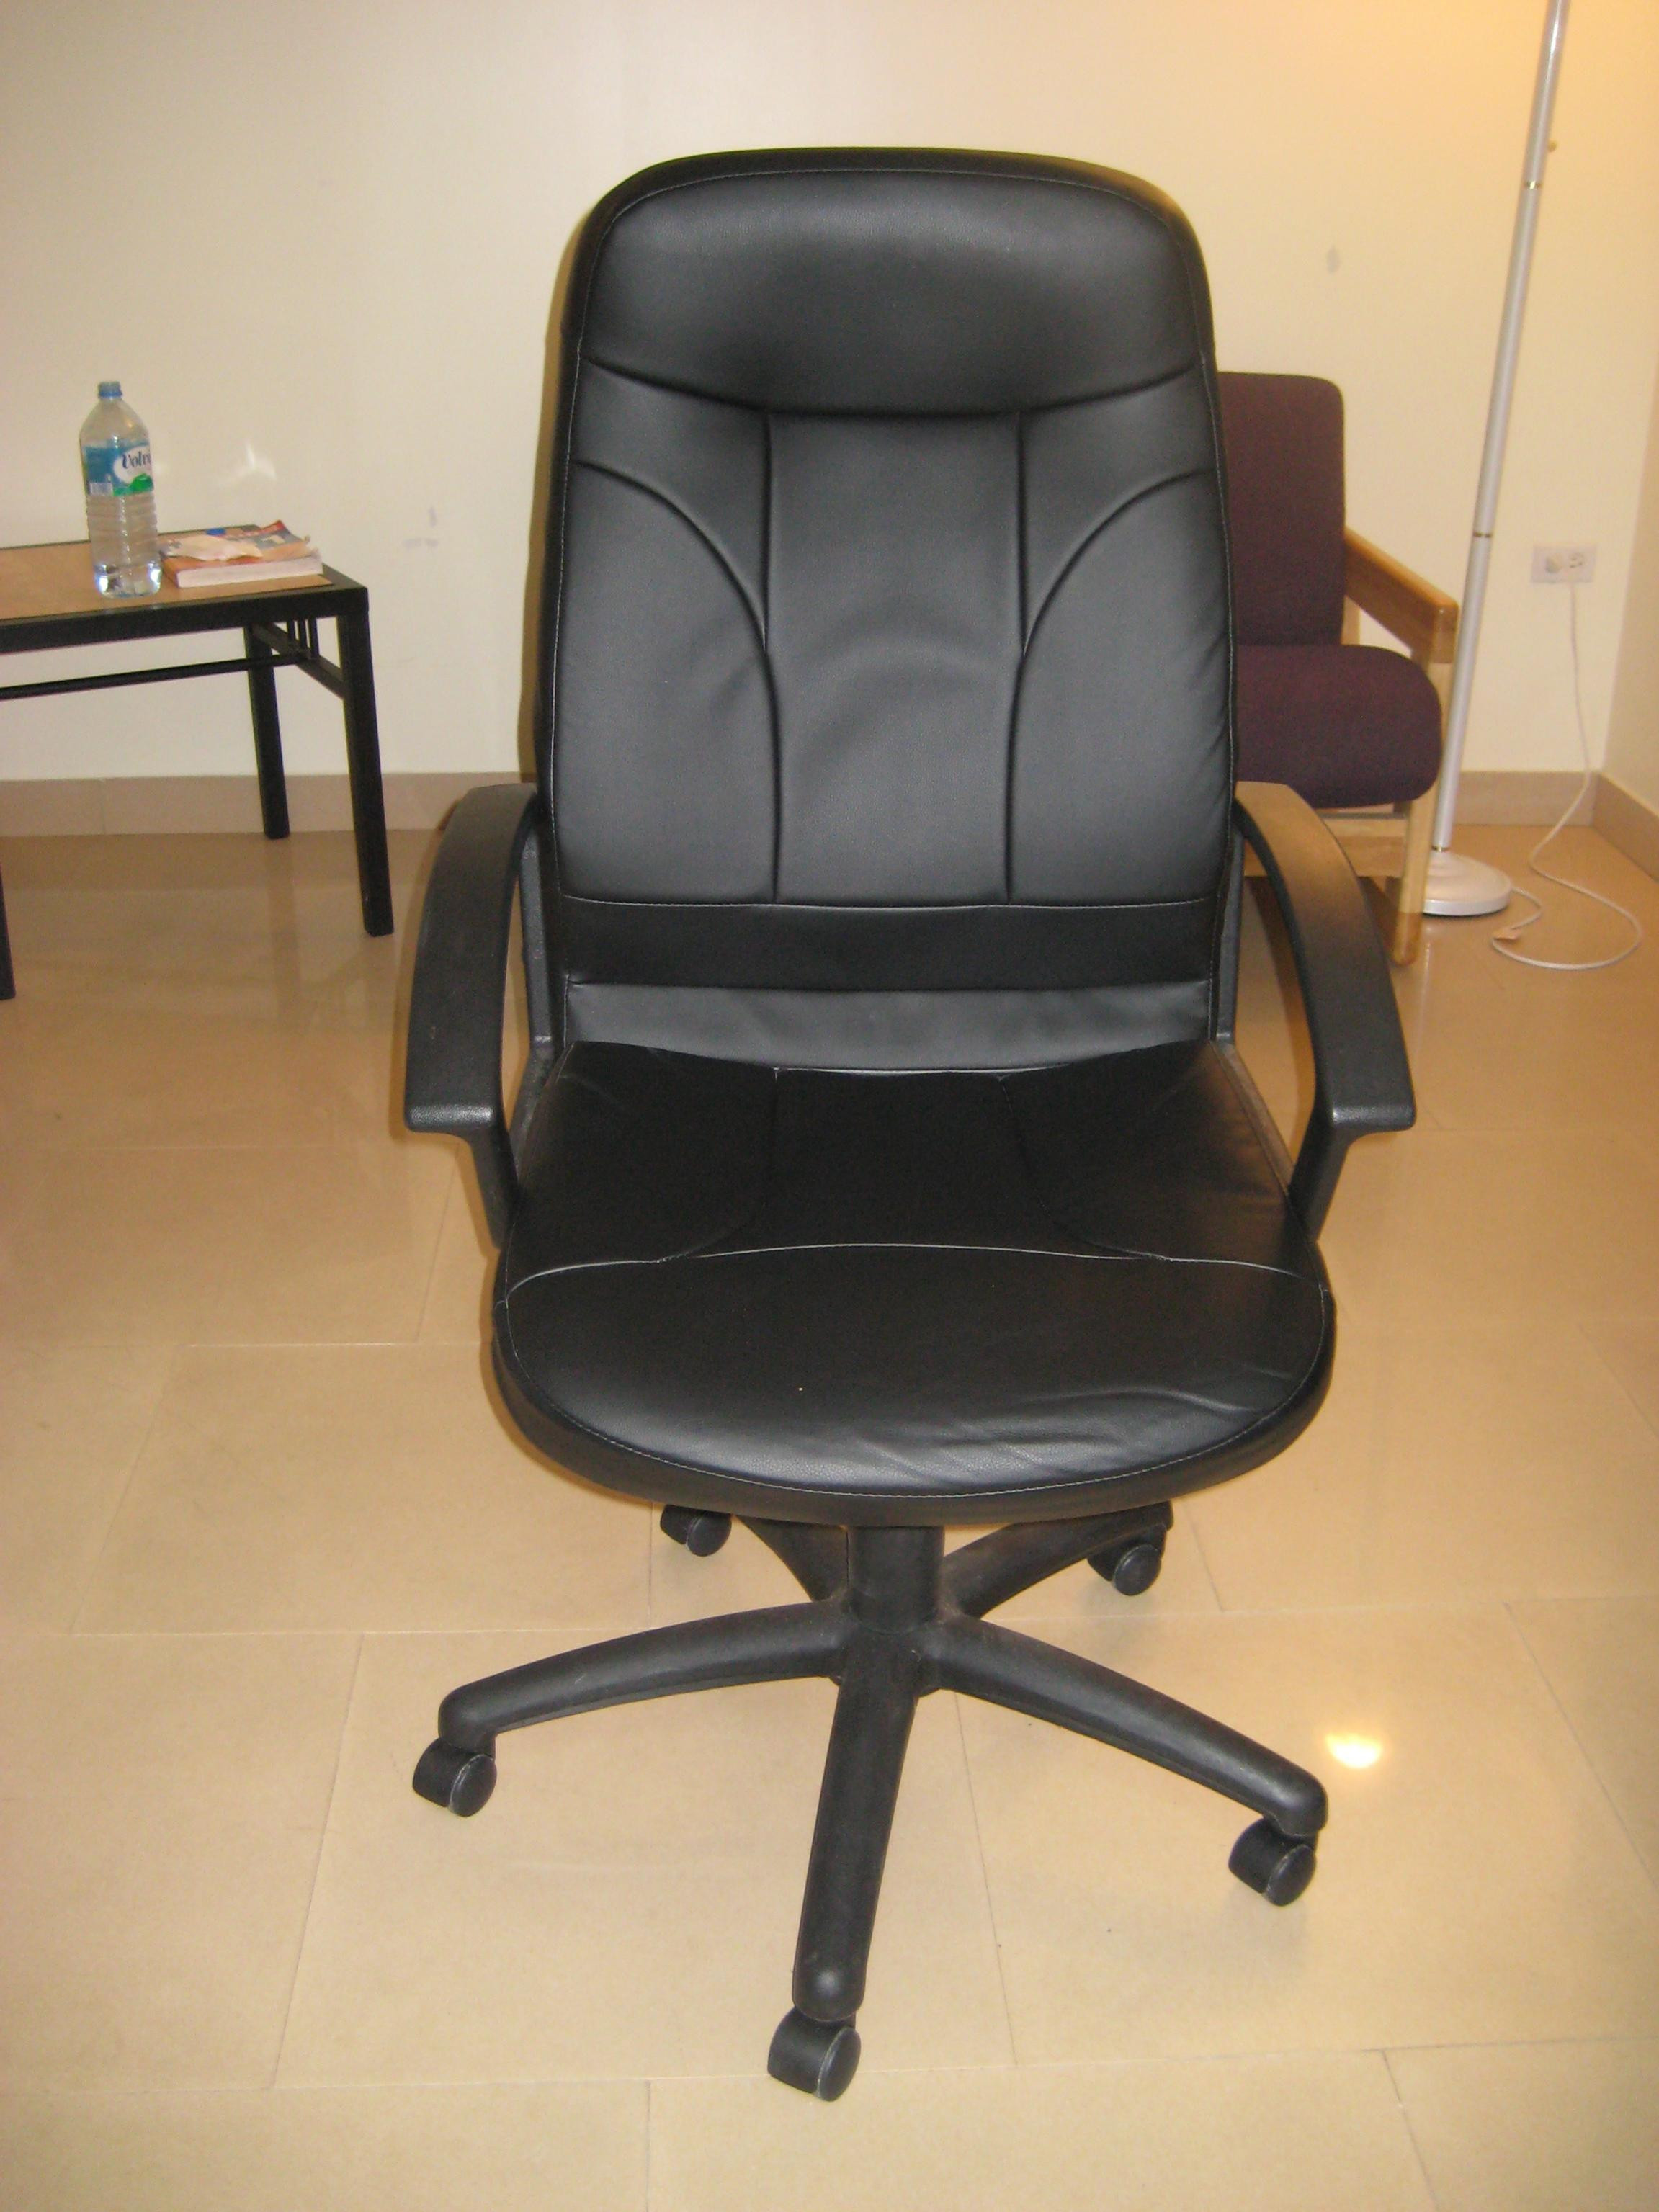 Best ideas about Office Chair Sale . Save or Pin fice Chair For Sale Now.